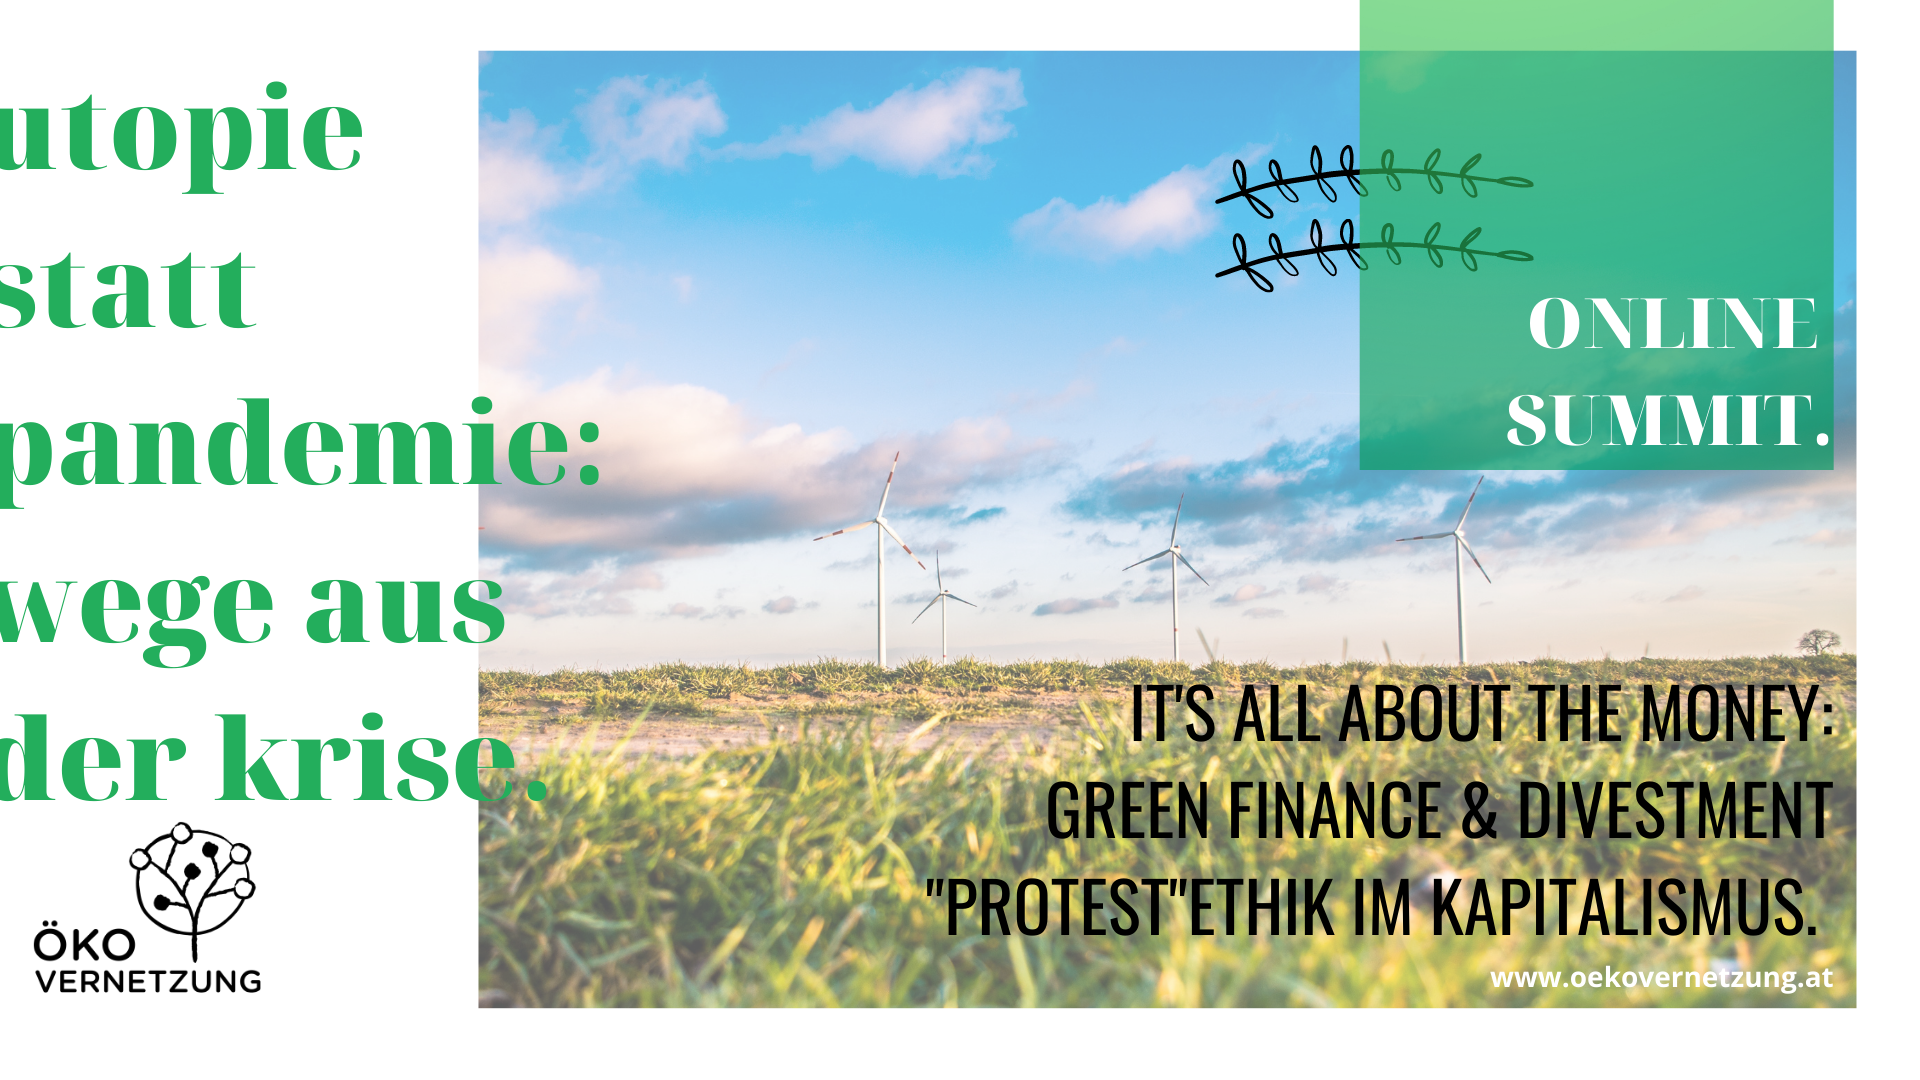 ONLINE-SUMMIT 2021 – 3: Green Finance & Divestment: Ethik & Kapitalismus